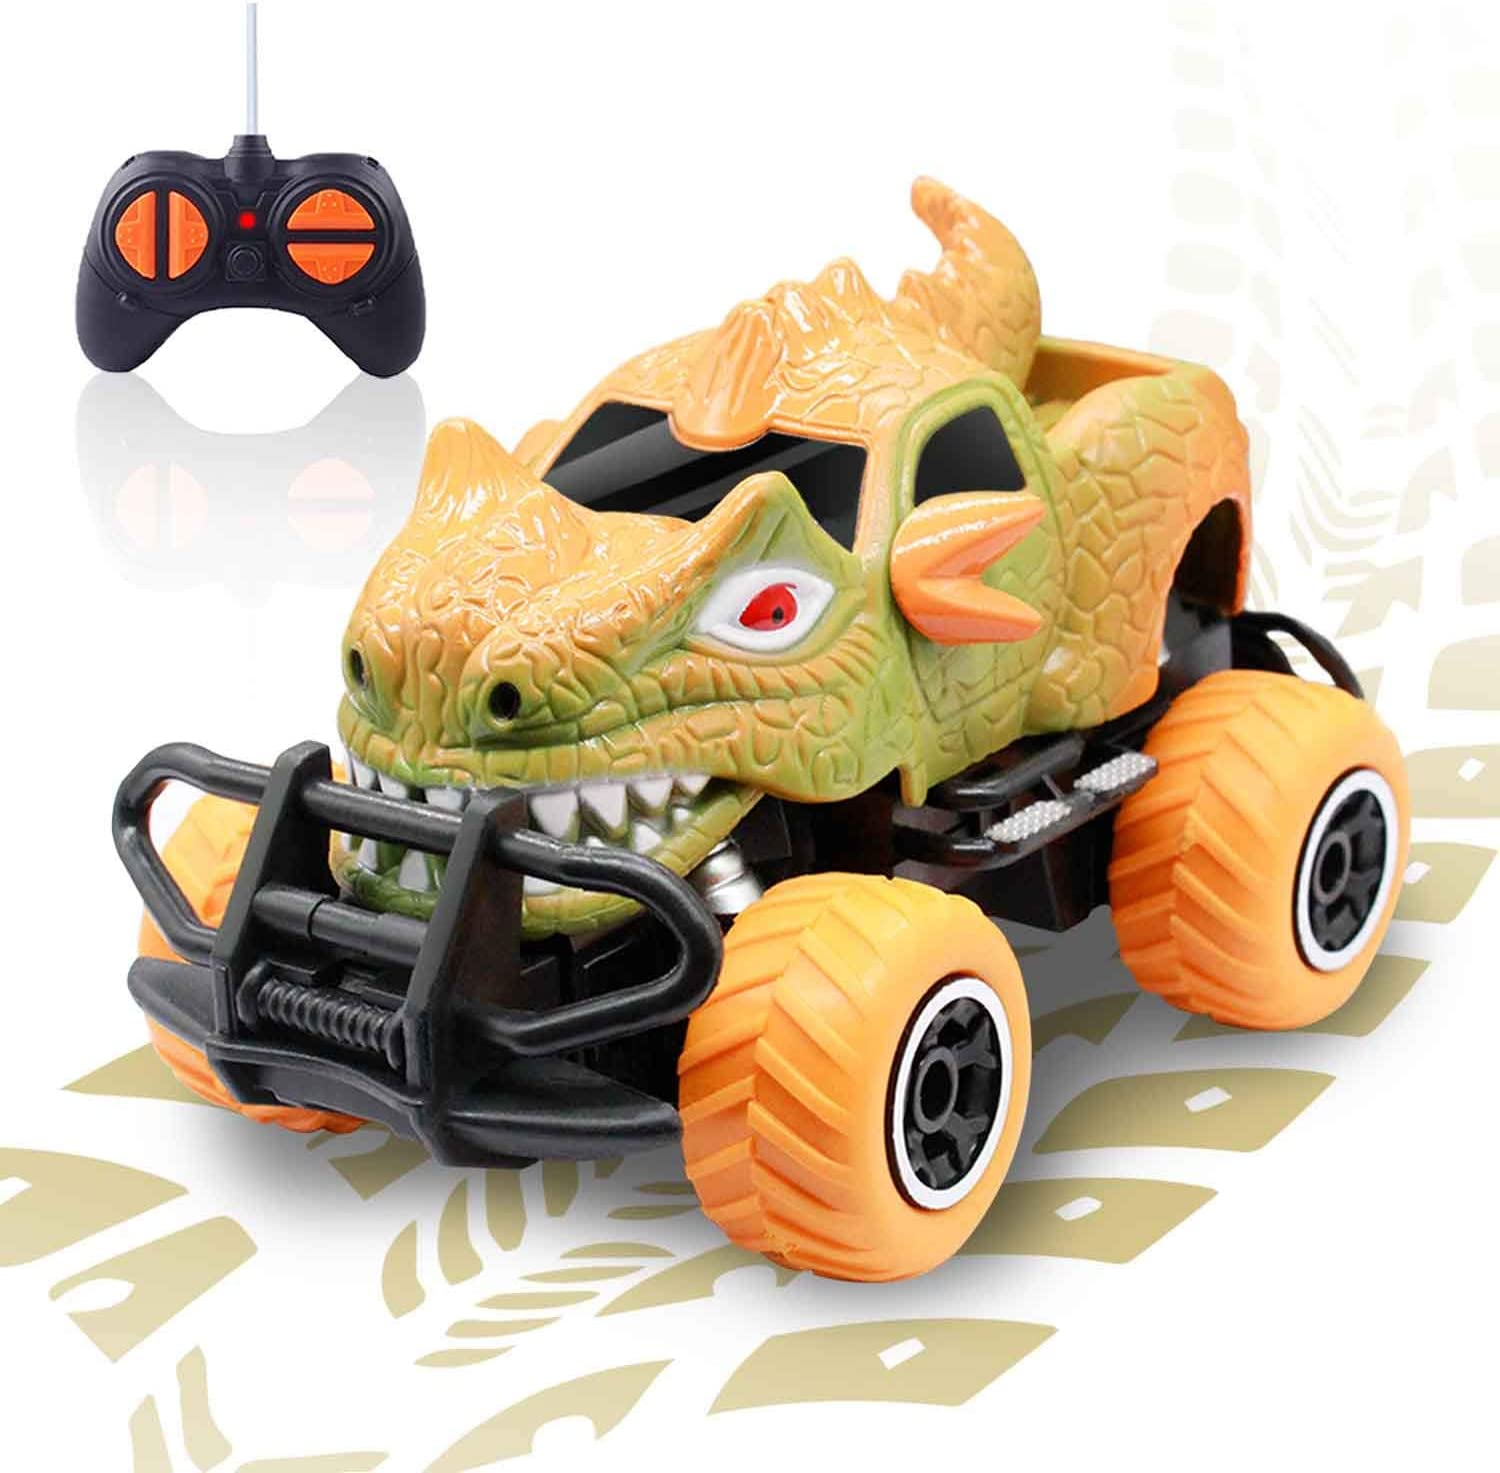 Amazon Com Dinosaur Rc Car Toys For 4 Year Old Boys Remote Control Cars Park Jurassic Toys For Toddlers Dino Rc Cars For Boy Toys 4 Years Old Birthday Gift For Age 3 Kids